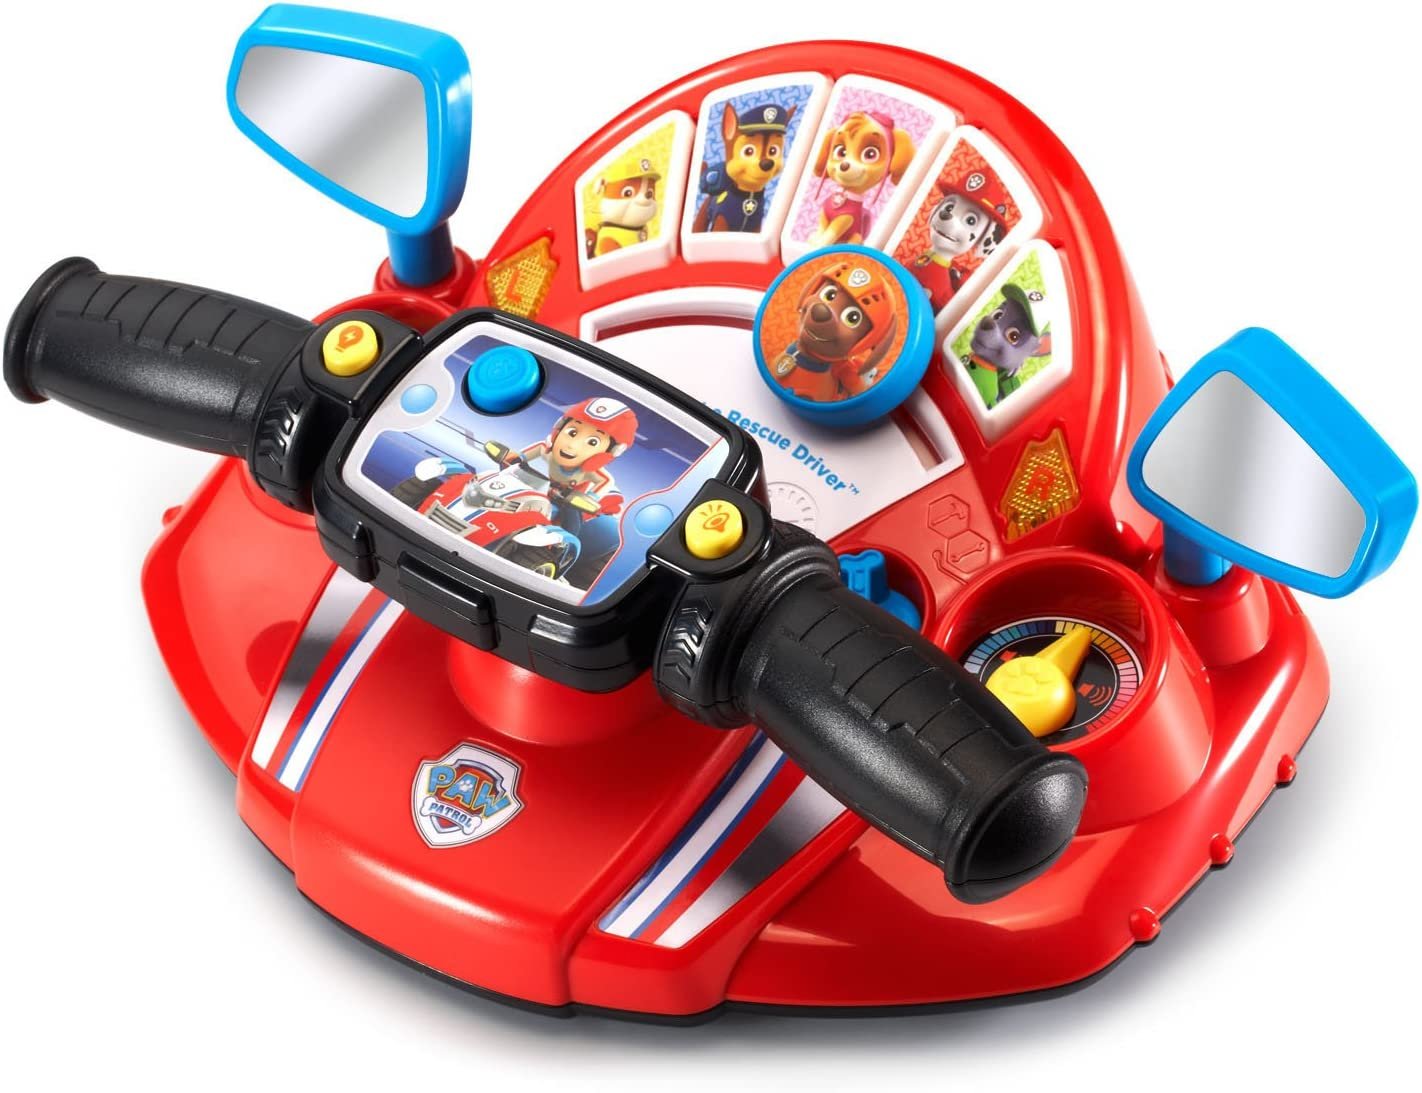 Top 12 Best Paw Patrol Toys (2020 Reviews & Buying Guide) 8